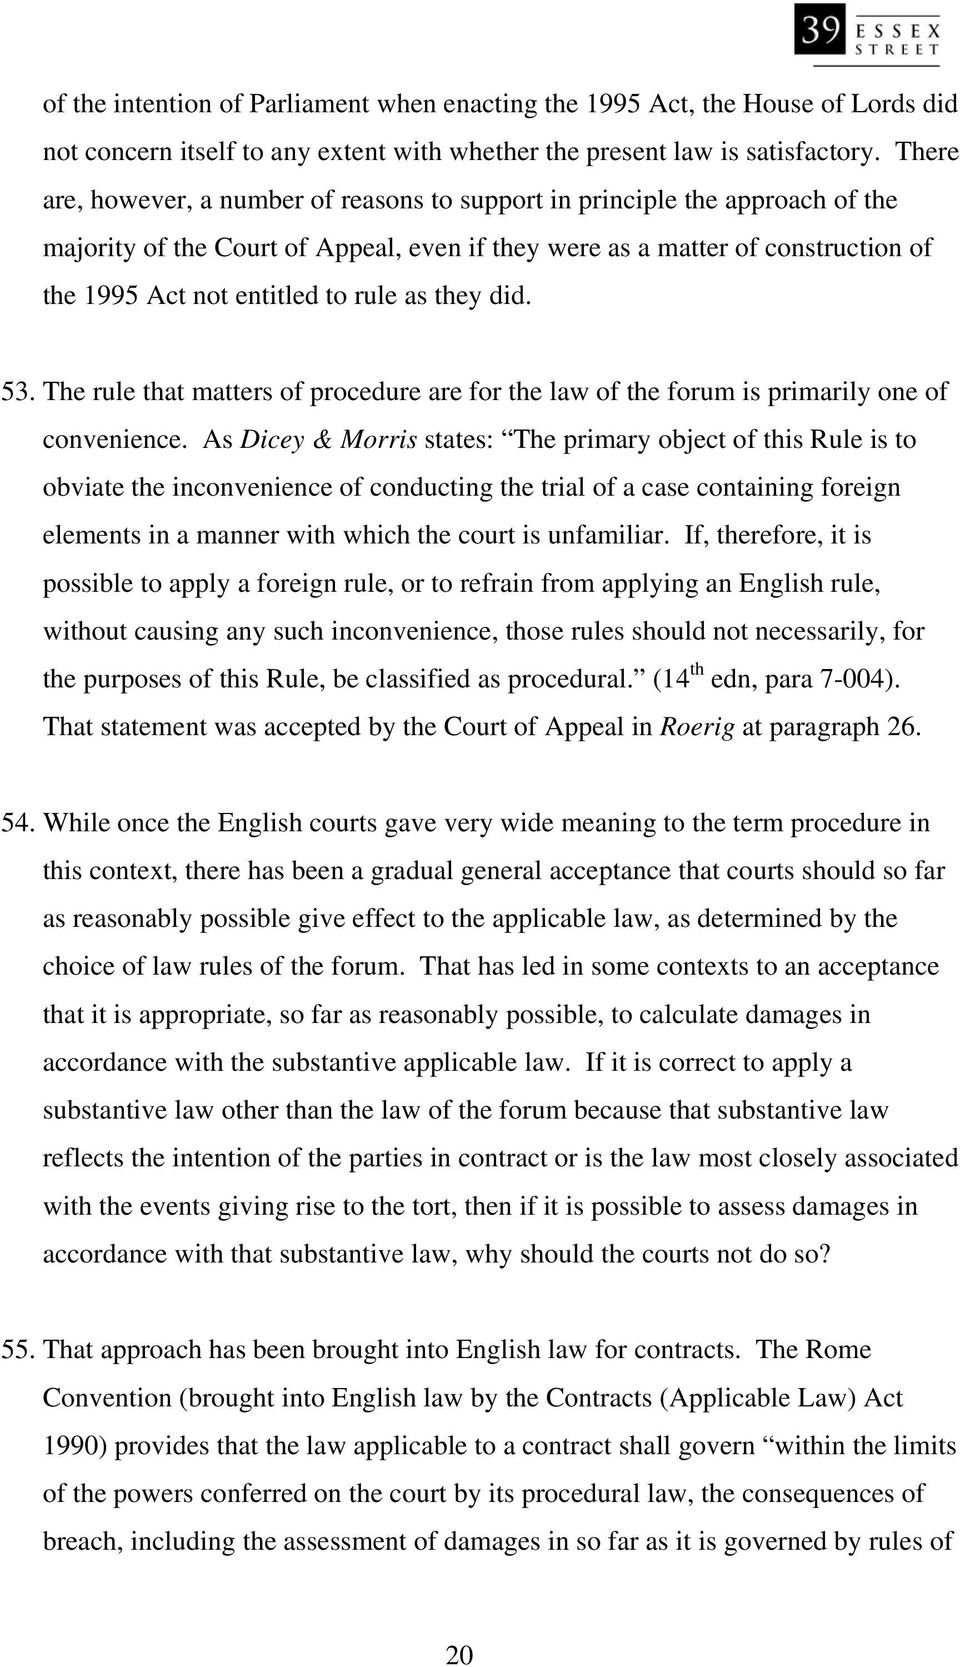 as they did. 53. The rule that matters of procedure are for the law of the forum is primarily one of convenience.